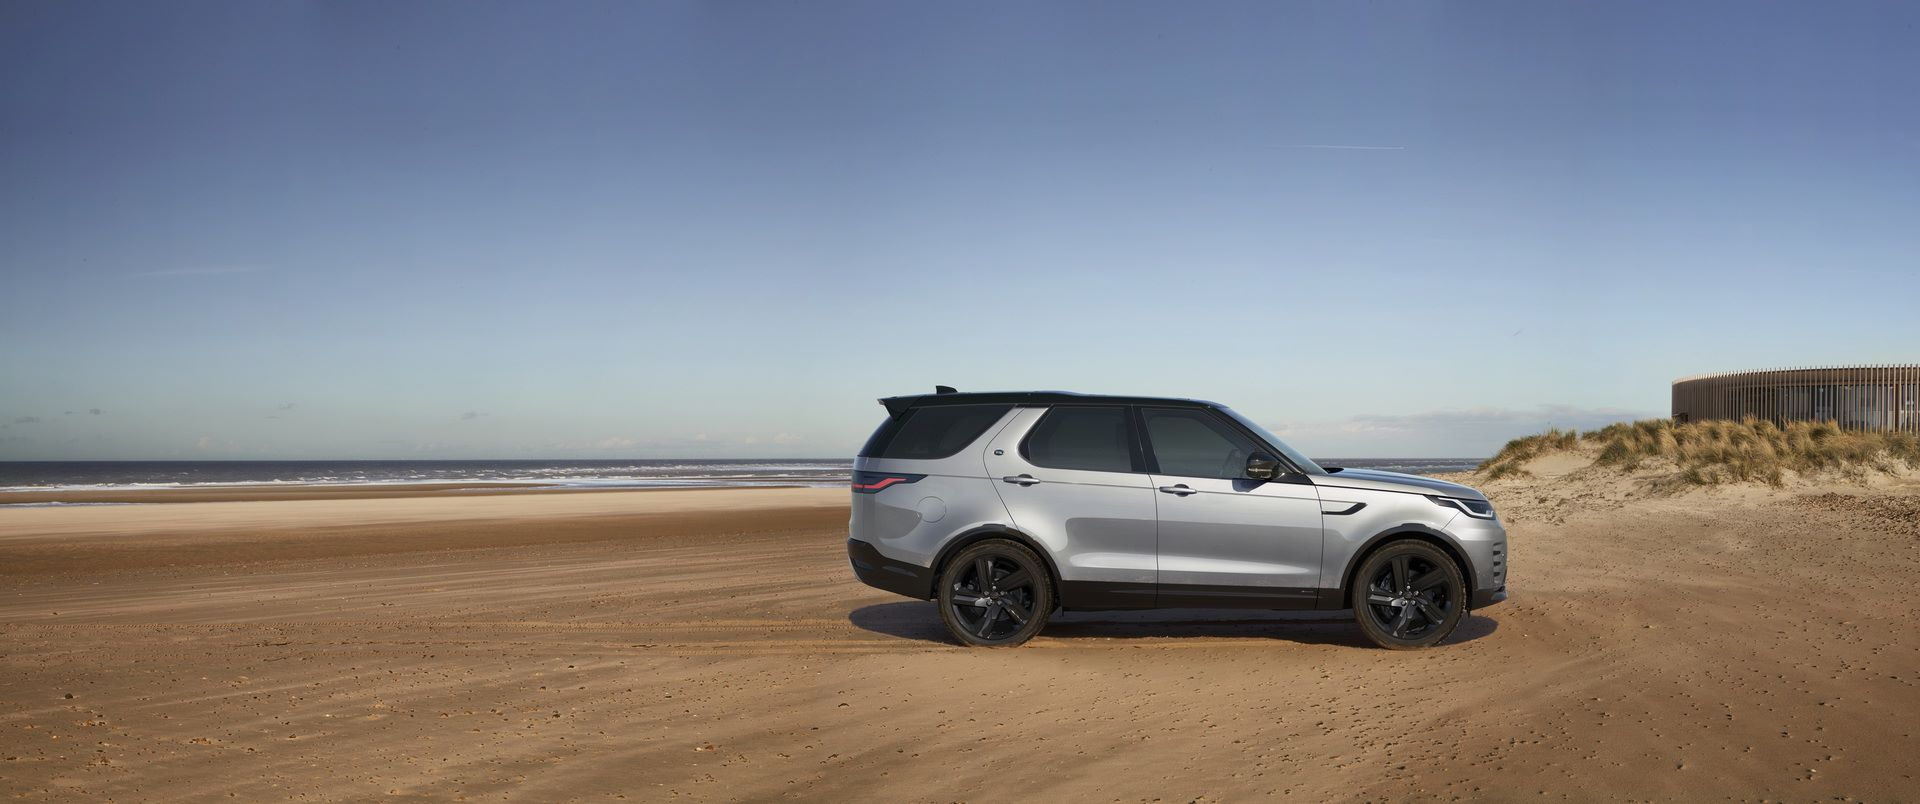 2021-Land-Rover-Discovery-82